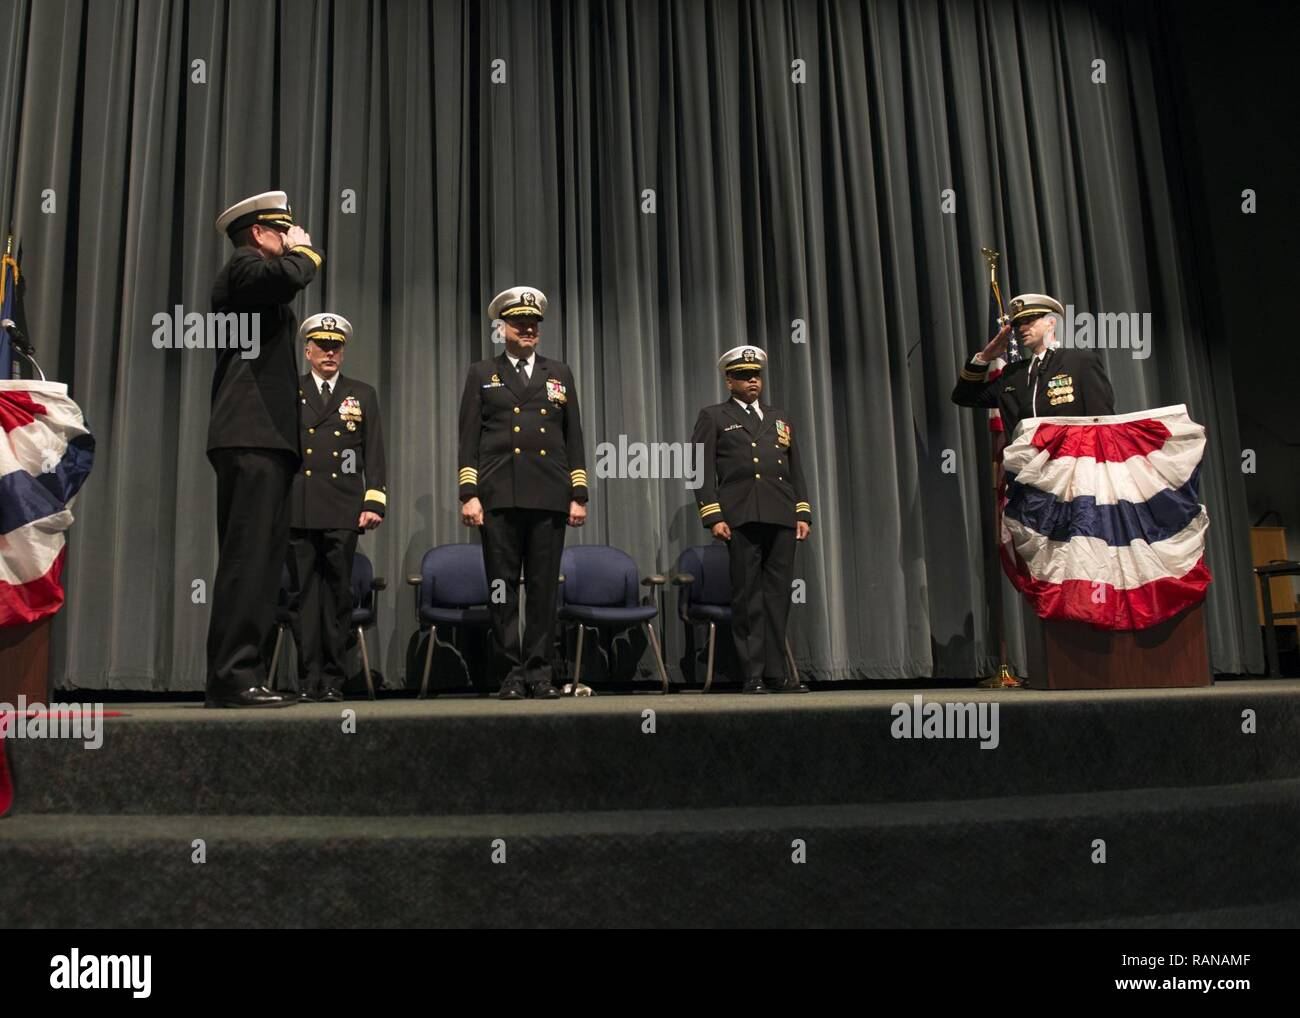 KEYPORT, Wash. (Feb. 27, 2017) Cmdr. Donald Tenney, left, commanding officer of the Los Angeles-class fast-attack submarine USS Albuquerque (SSN 706) orders the executive officer, Lt. Cmdr. Ryan Kramer, to secure the watch during the boat's decommissioning ceremony held at Keyport Undersea Museum. Albuquerque concluded 33 years of service as the second U.S. Navy warship to be named after Albuquerque, New Mexico. - Stock Image